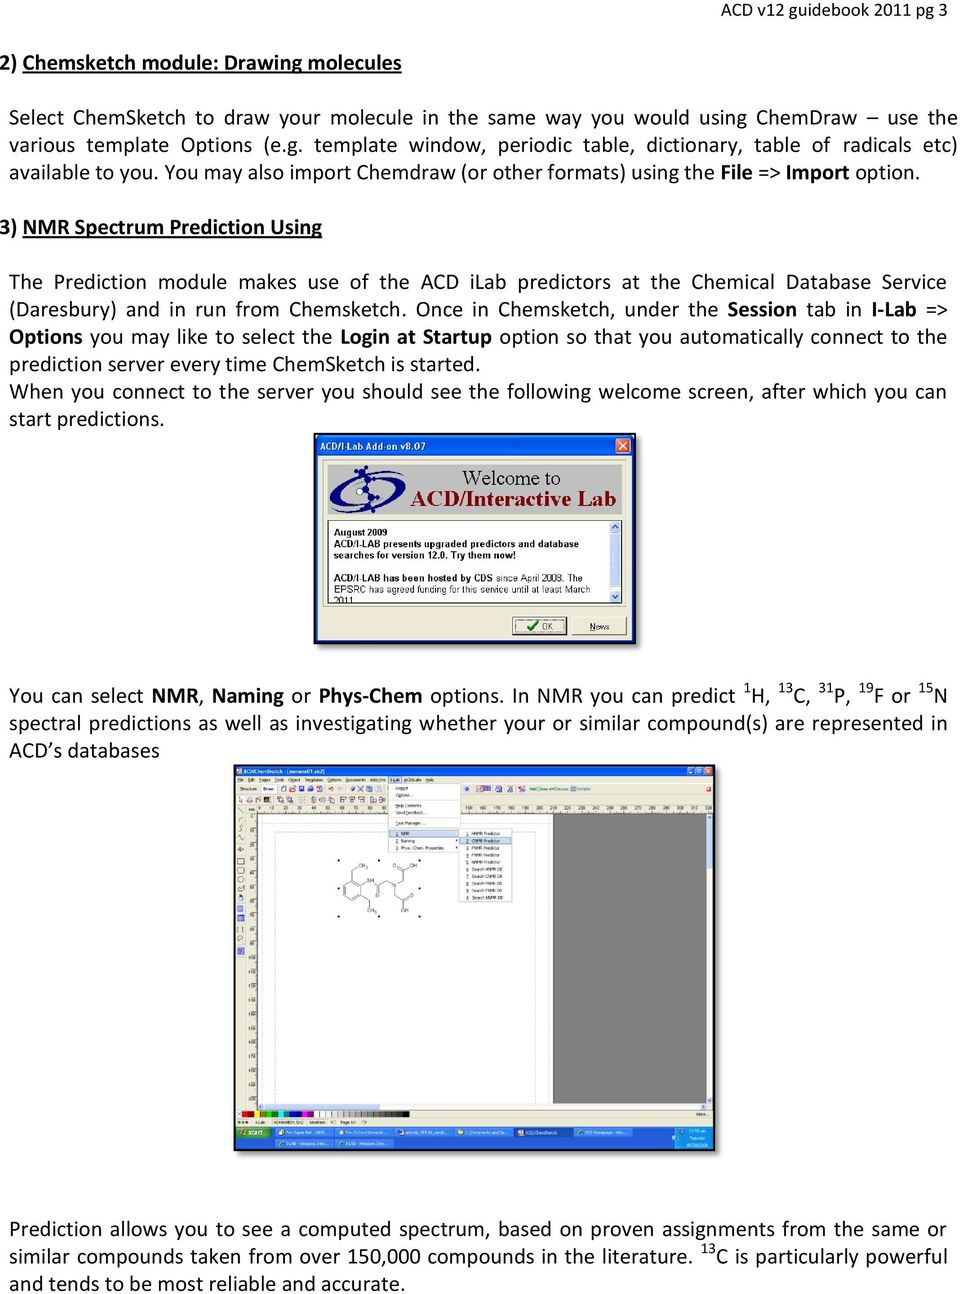 3) NMR Spectrum Prediction Using The Prediction module makes use of the ACD ilab predictors at the Chemical Database Service (Daresbury) and in run from Chemsketch.